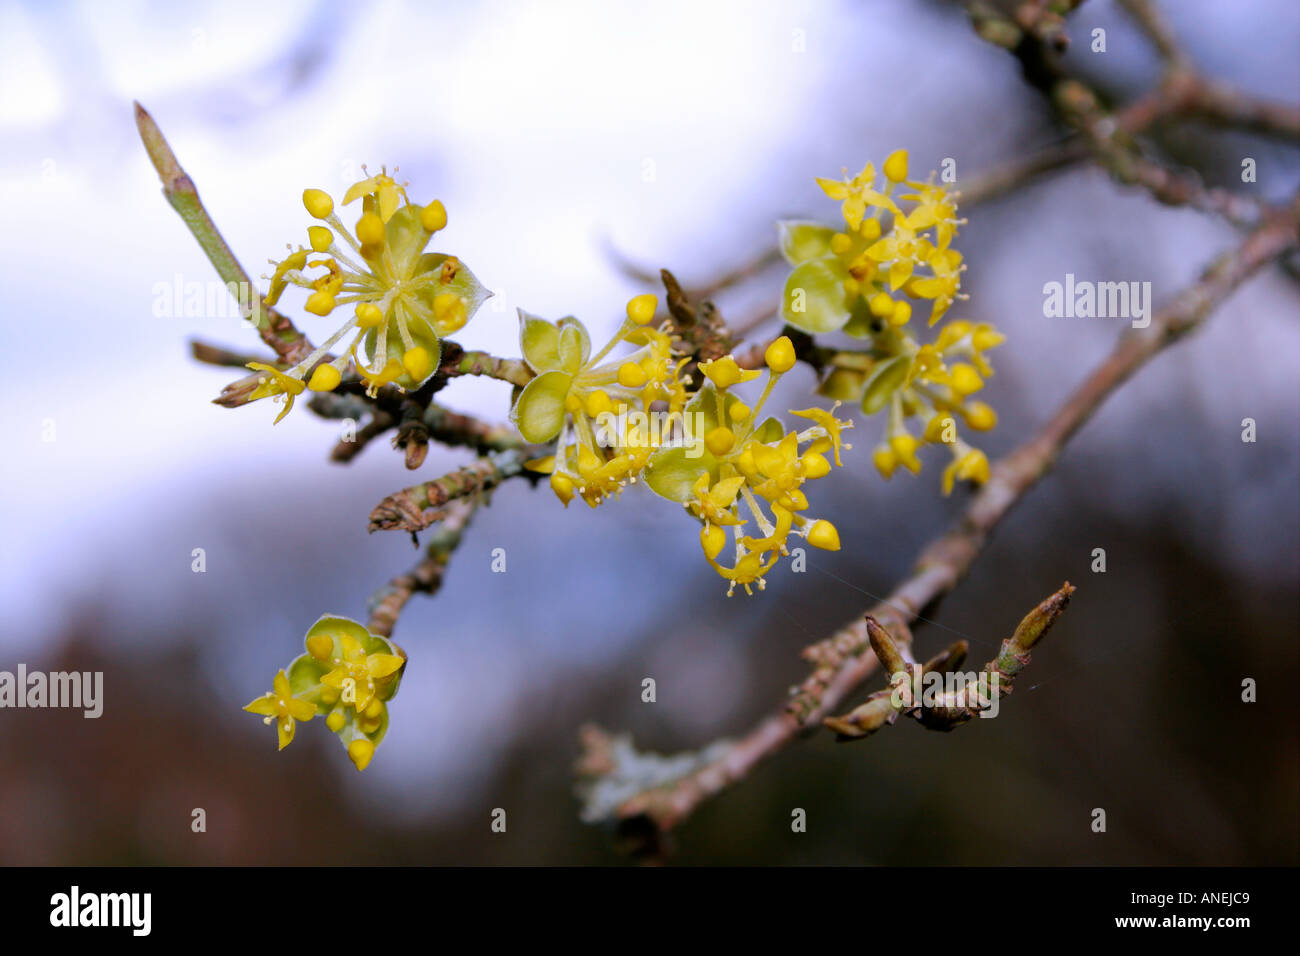 Names Of Spring Flowers With Pictures Gallery Fresh Lotus Flowers